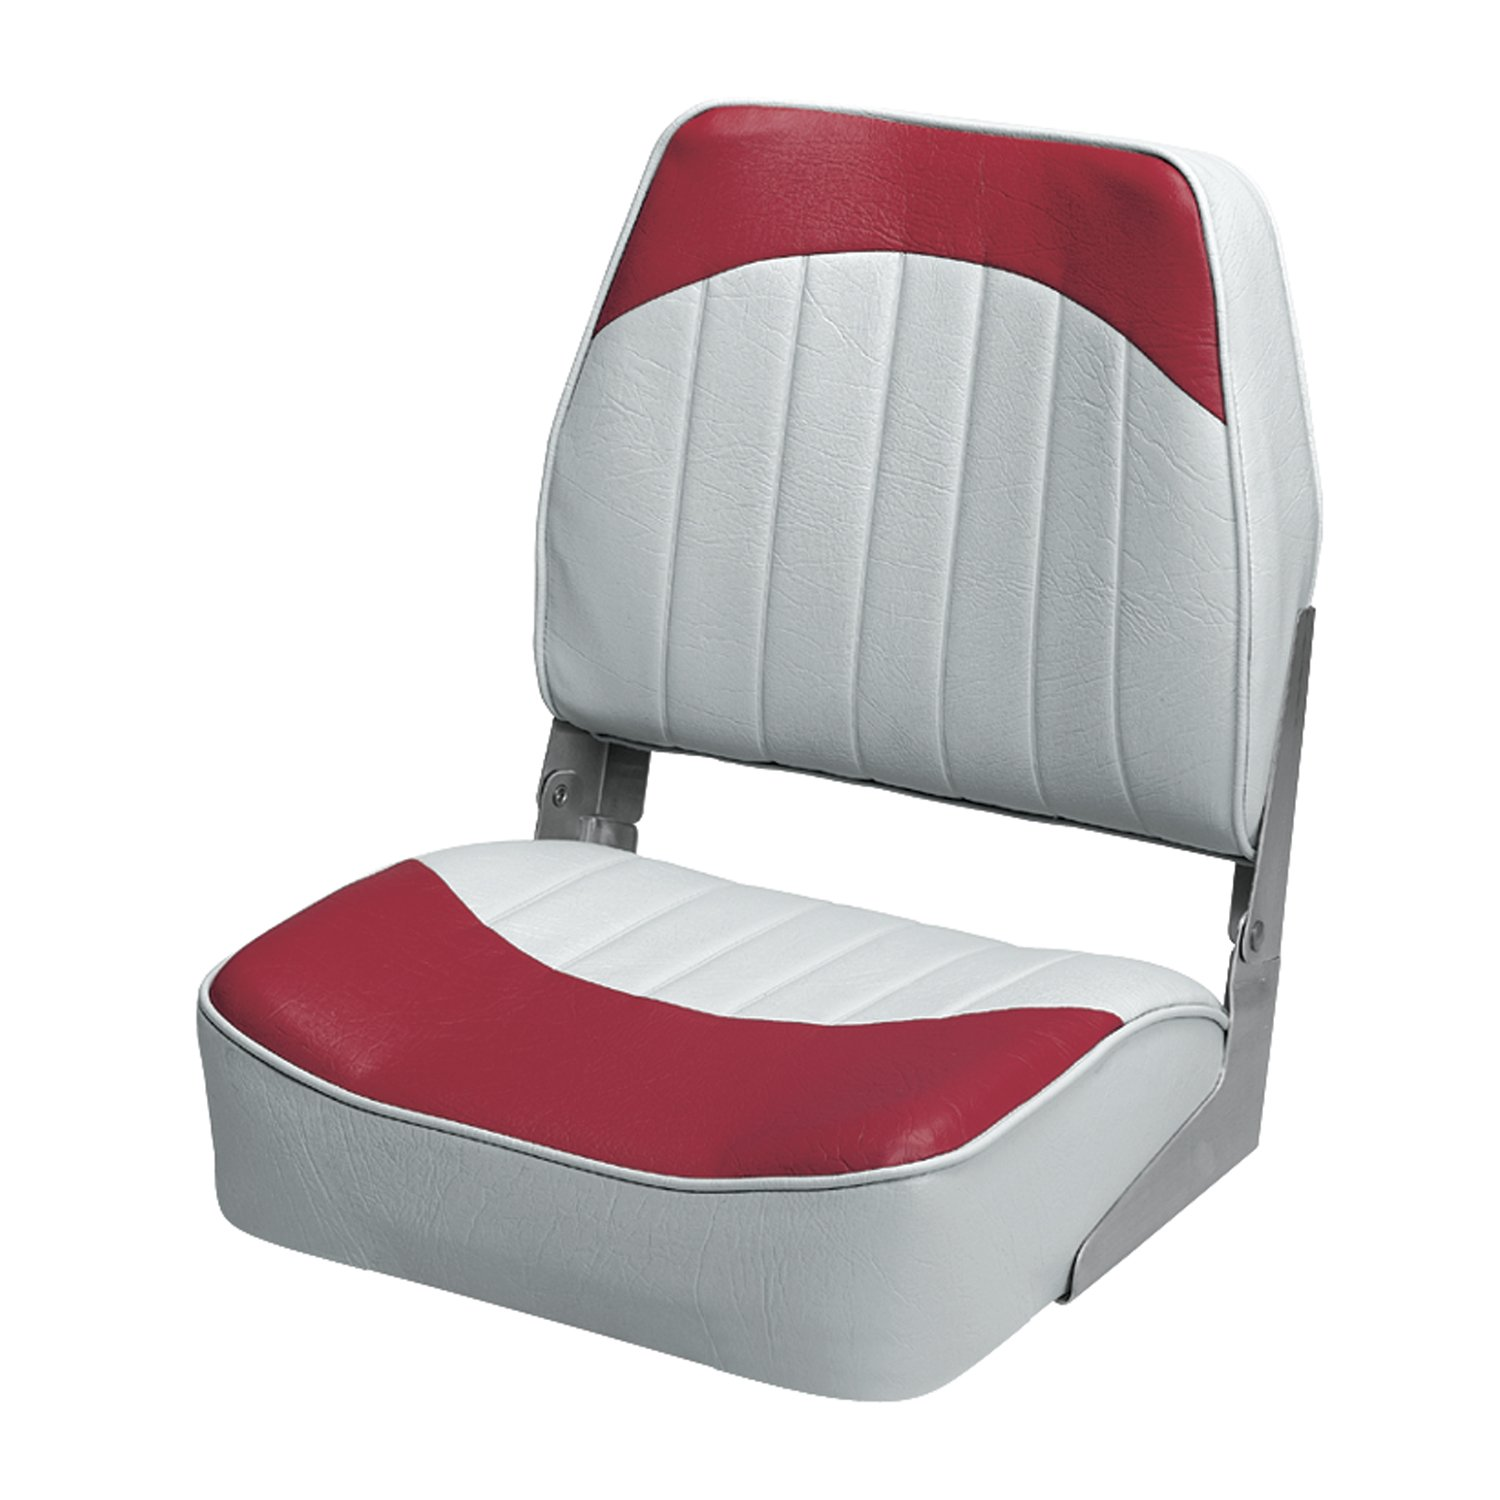 Wise 8WD734PLS-661 Low Back Boat Seat, Grey/Red by Wise (Image #1)